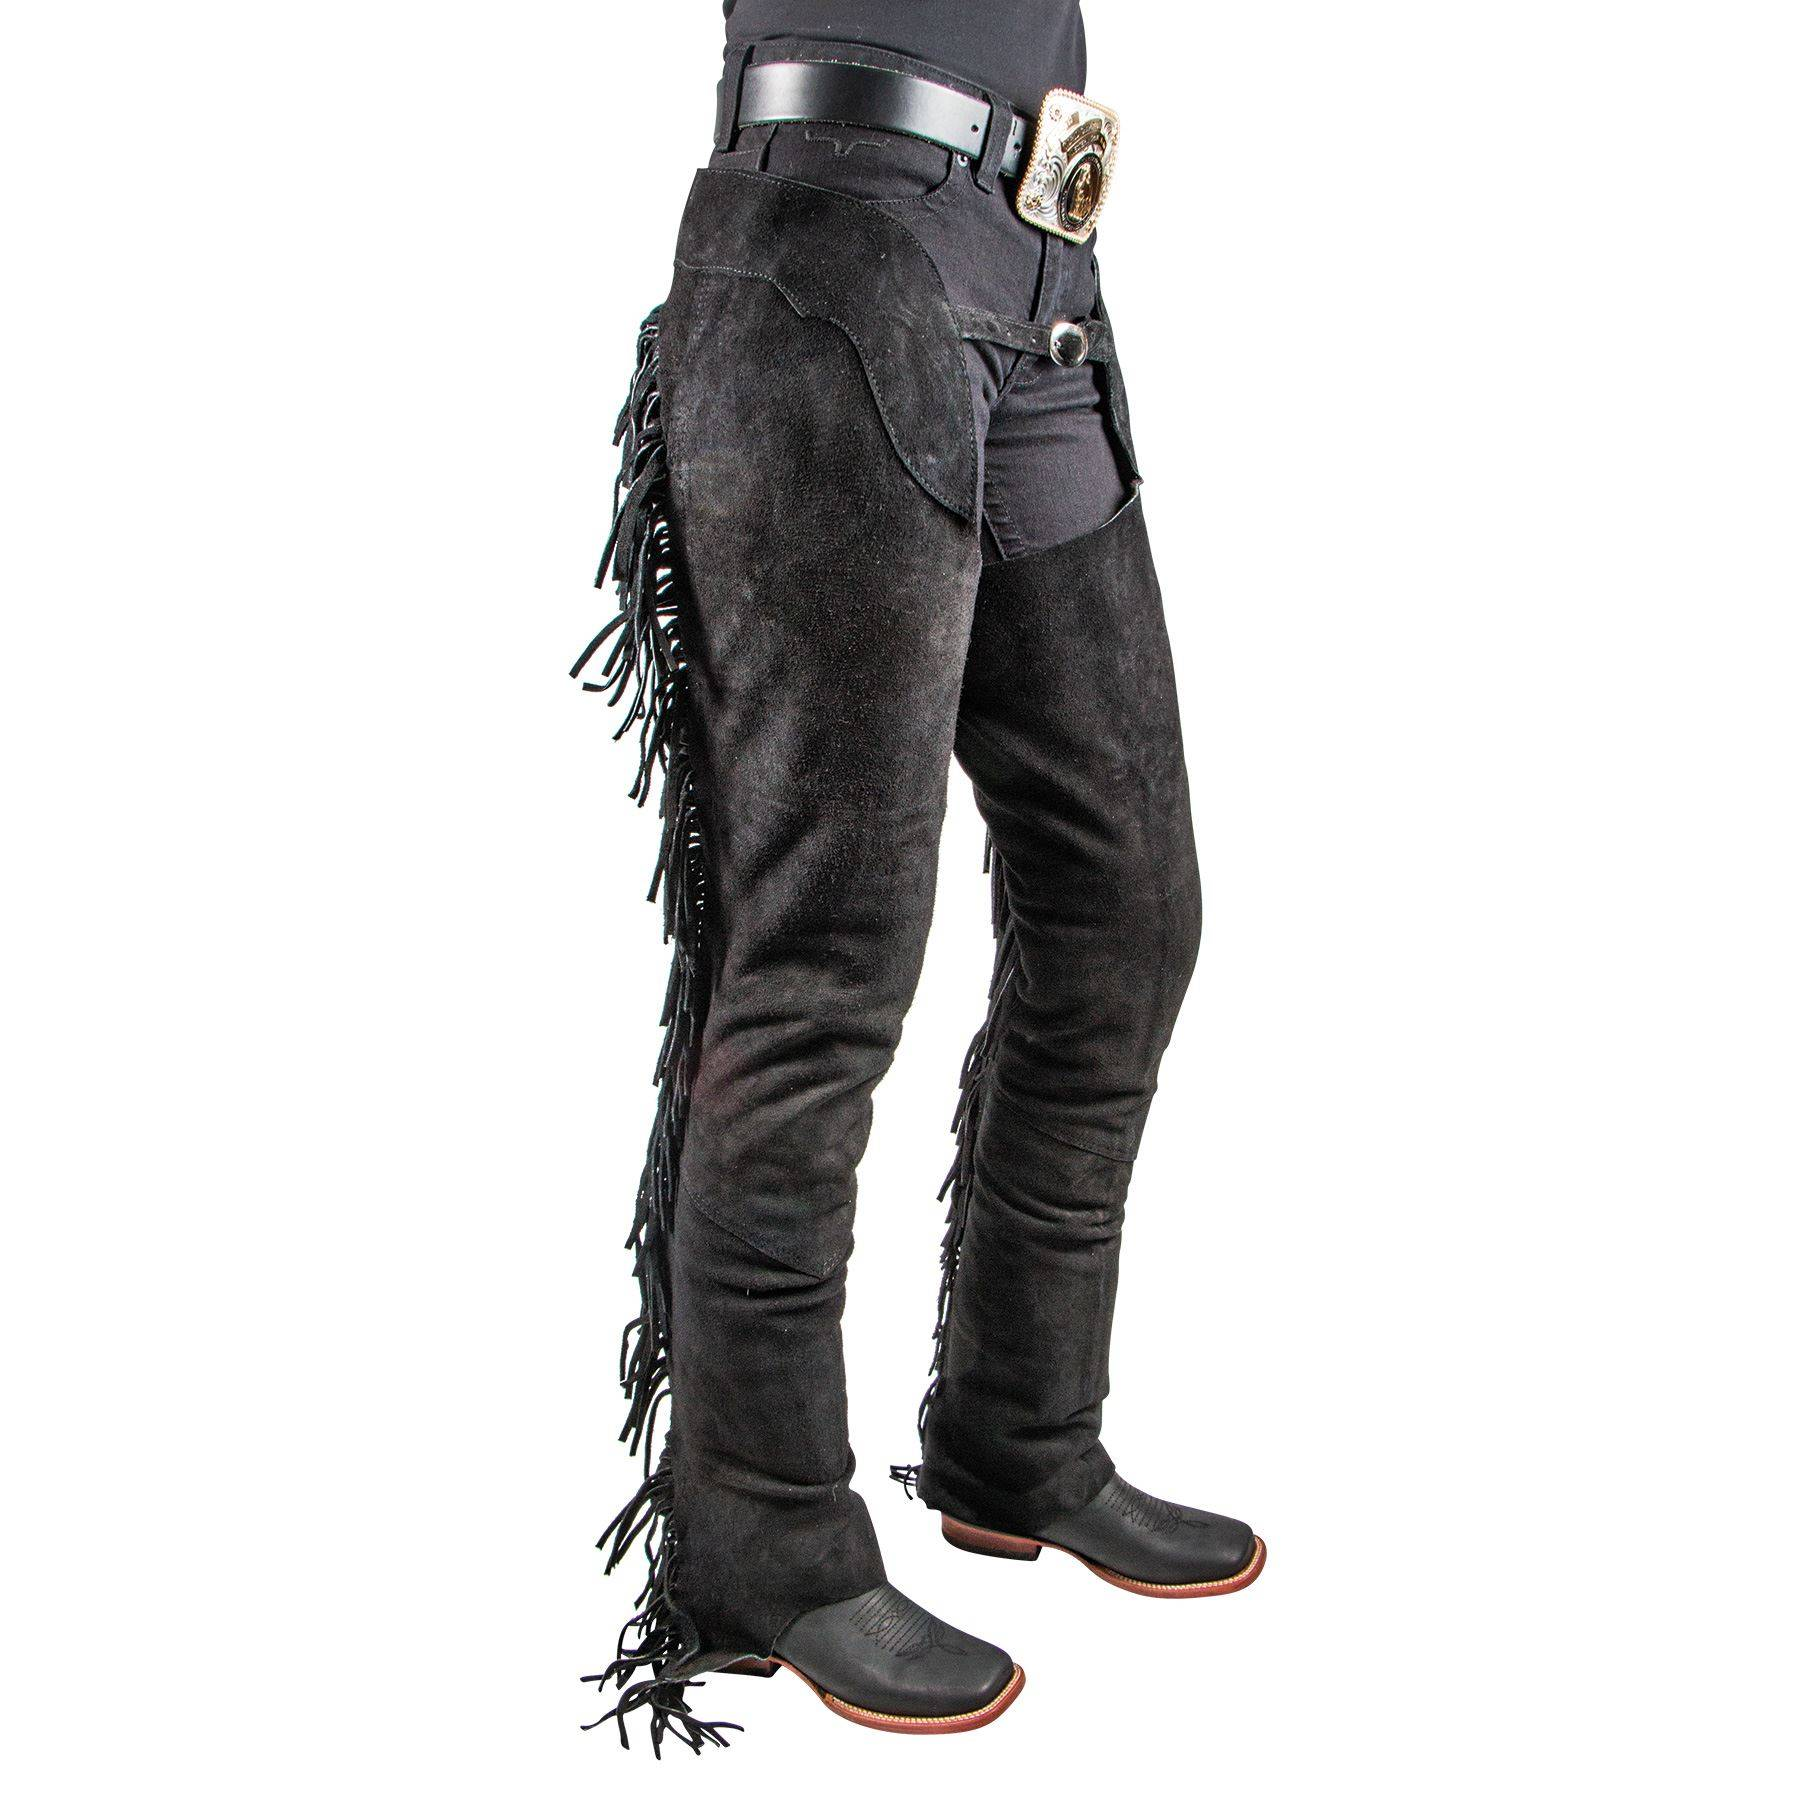 Western Riding SHOW CHAPS Suede Leather FRINGE down both Legs /& SILVER Concho